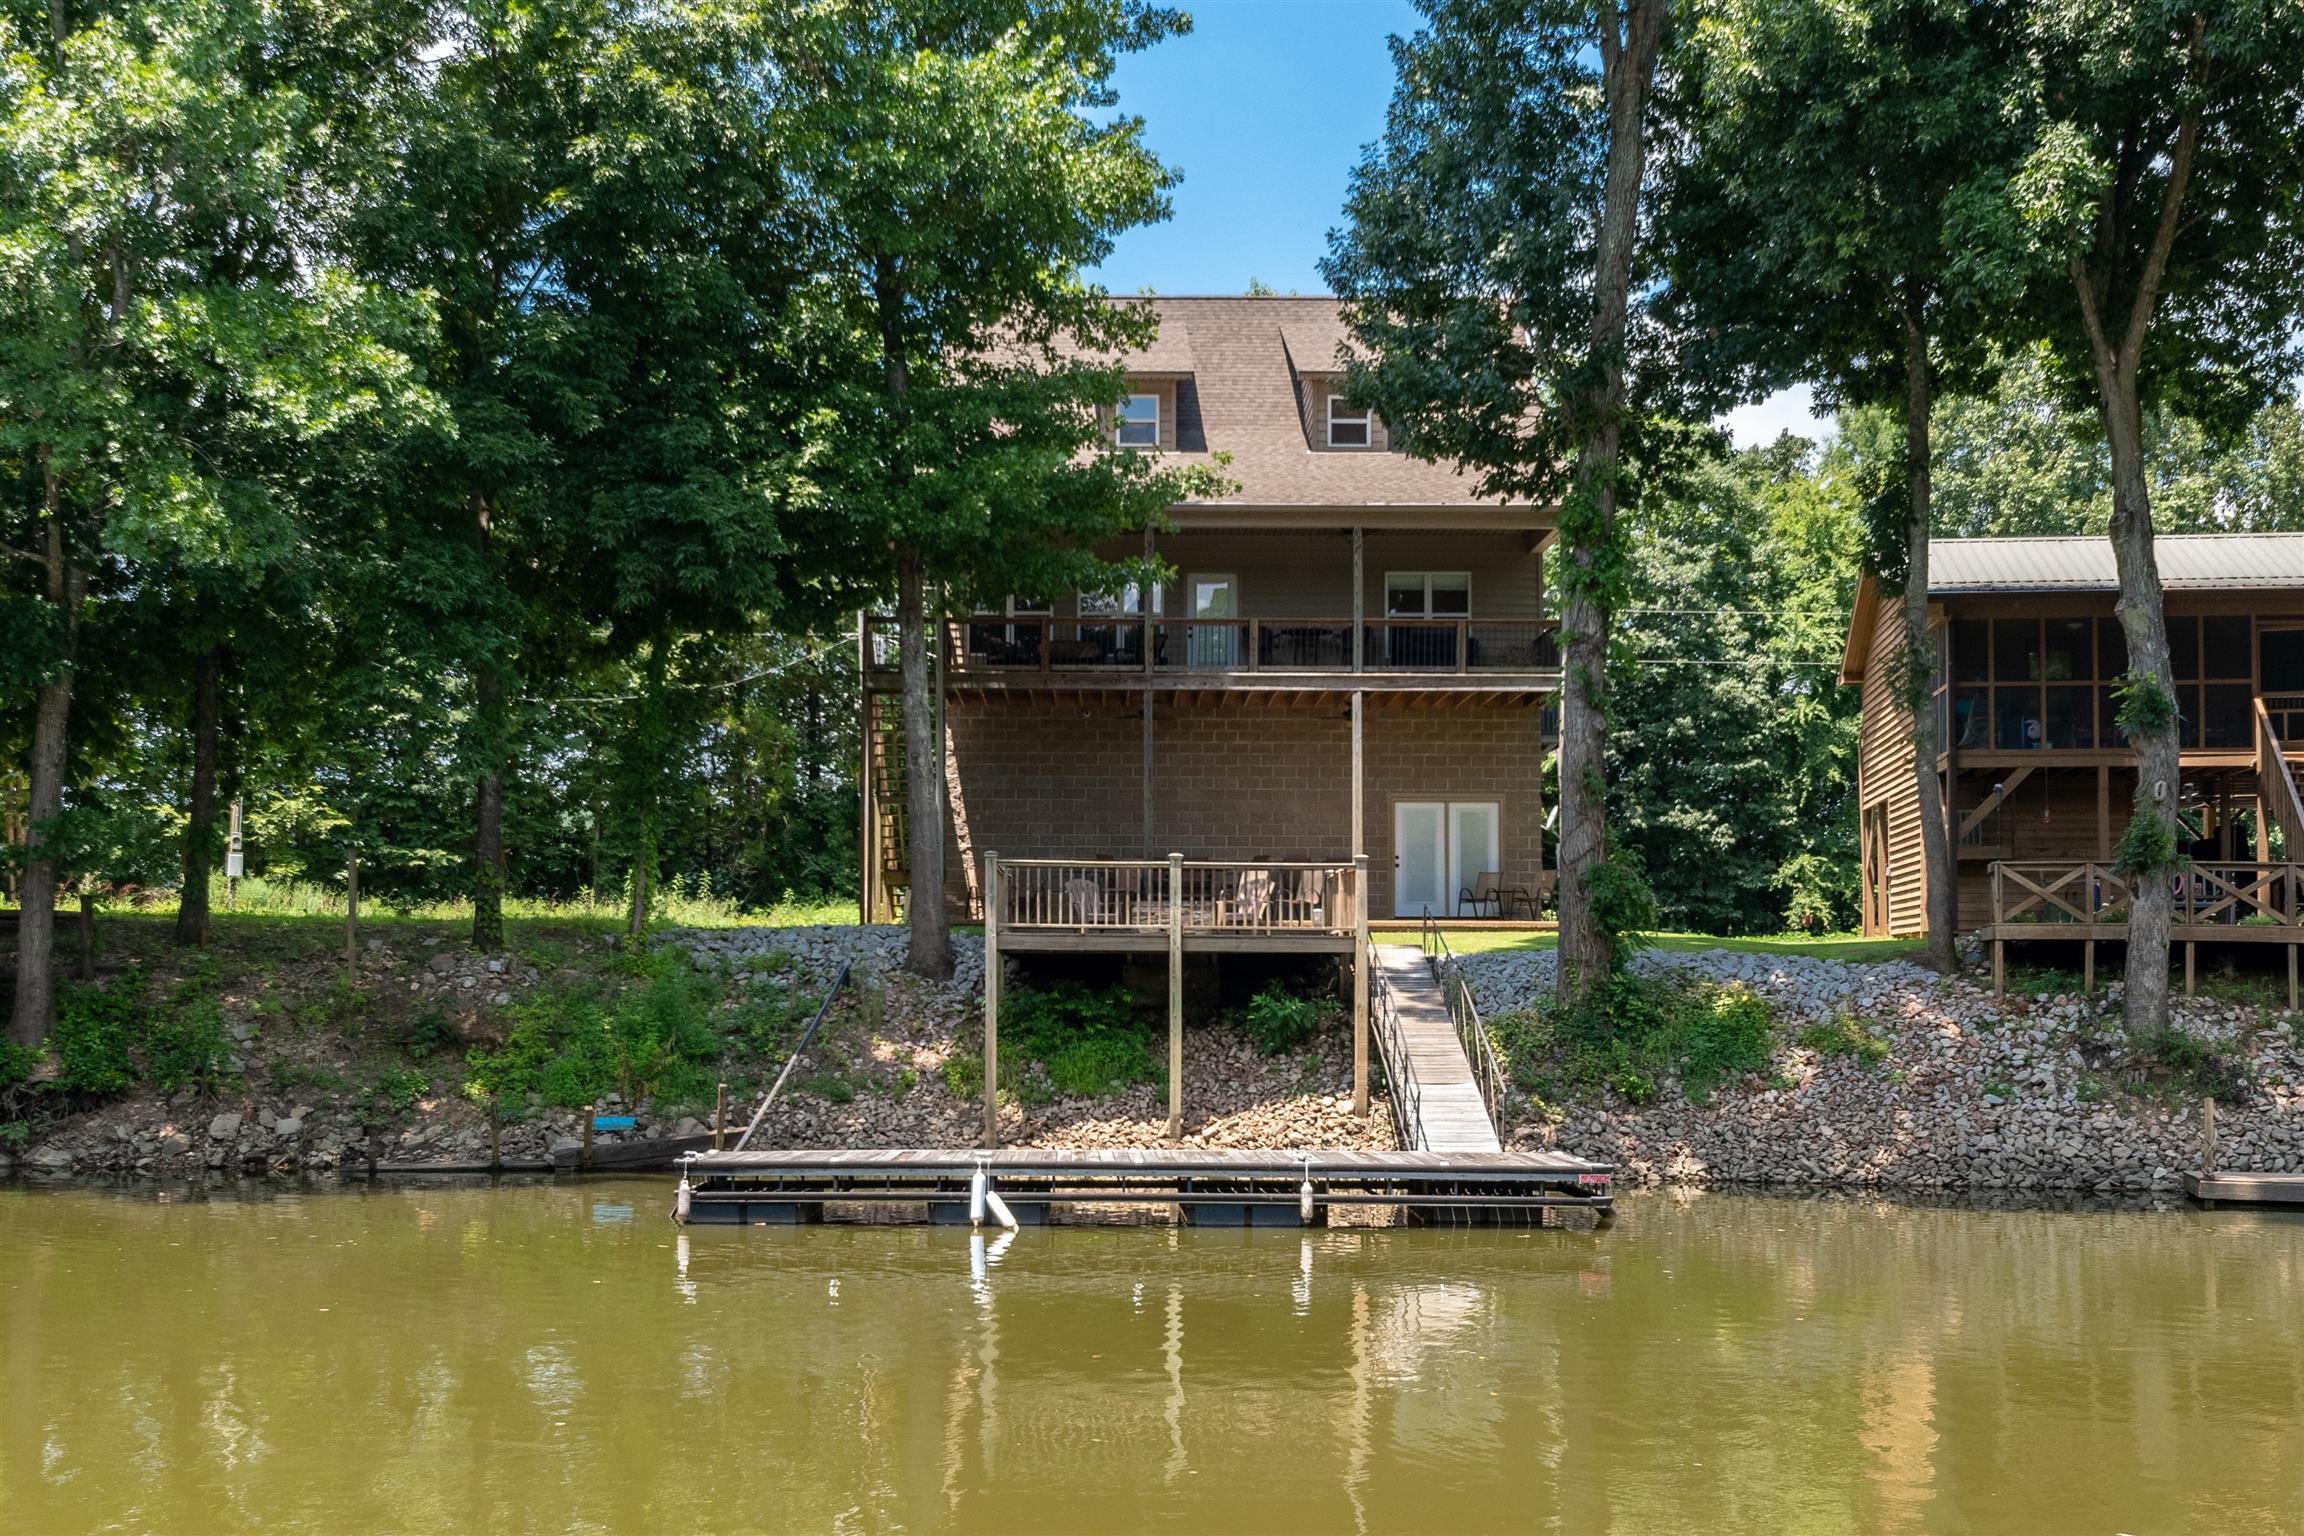 339 Creekside View Ln, Decaturville, TN 38329 - Decaturville, TN real estate listing